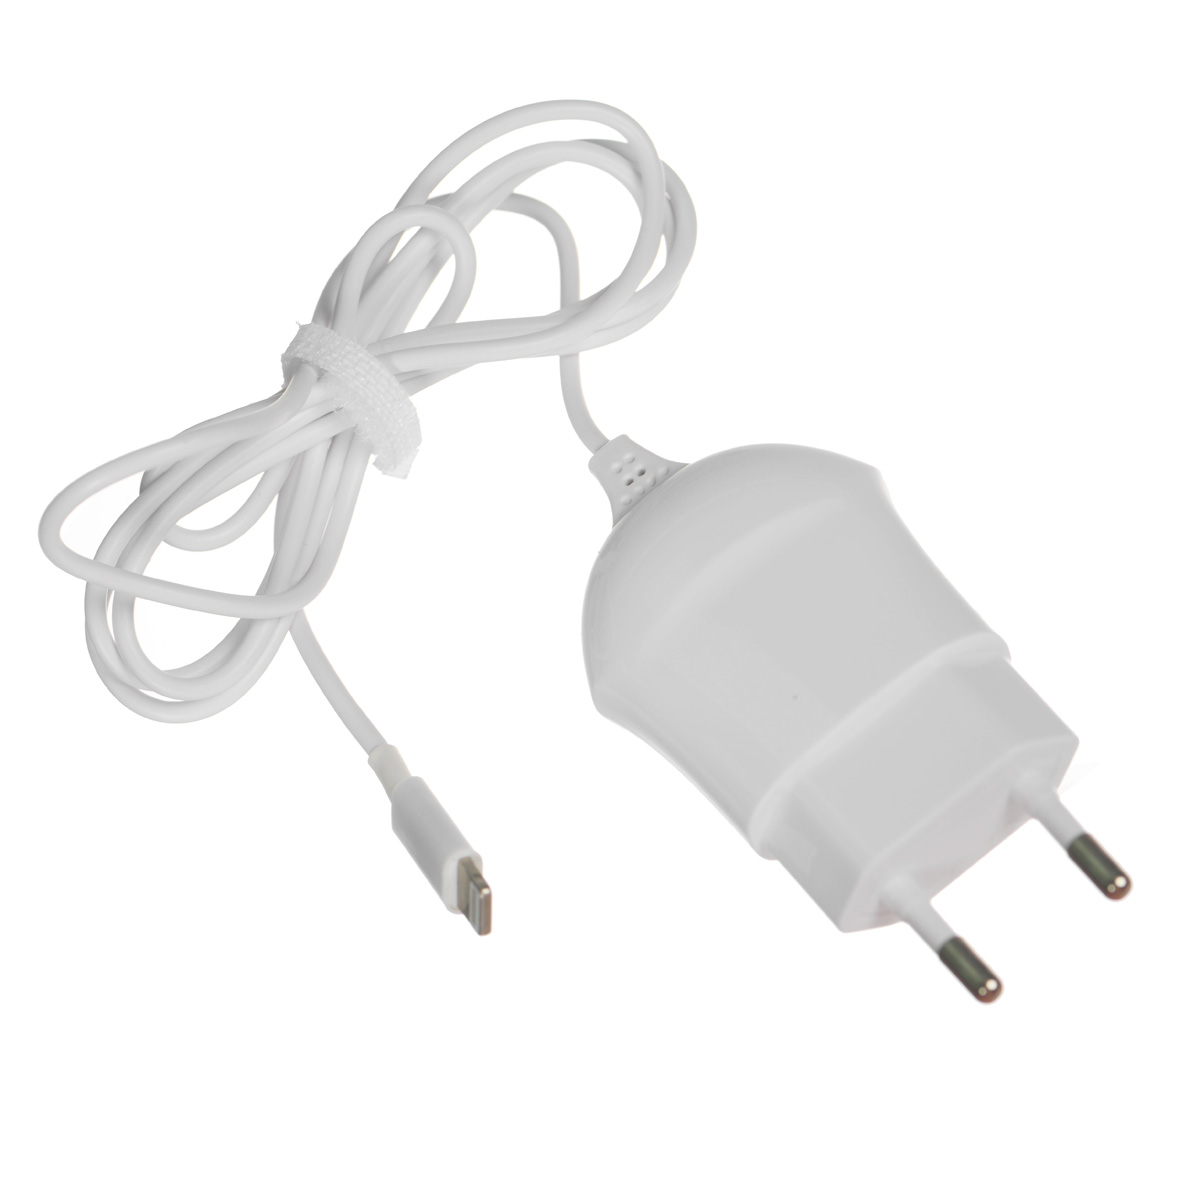 Deppa Wall Charger 1A, White сетевое зарядное устройство с разъемом 8-pin ugreen 5v 2 1a usb charger for iphone x 8 7 ipad fast wall charger eu adapter for samsung s9 xiaomi mi8 phone charger model50459